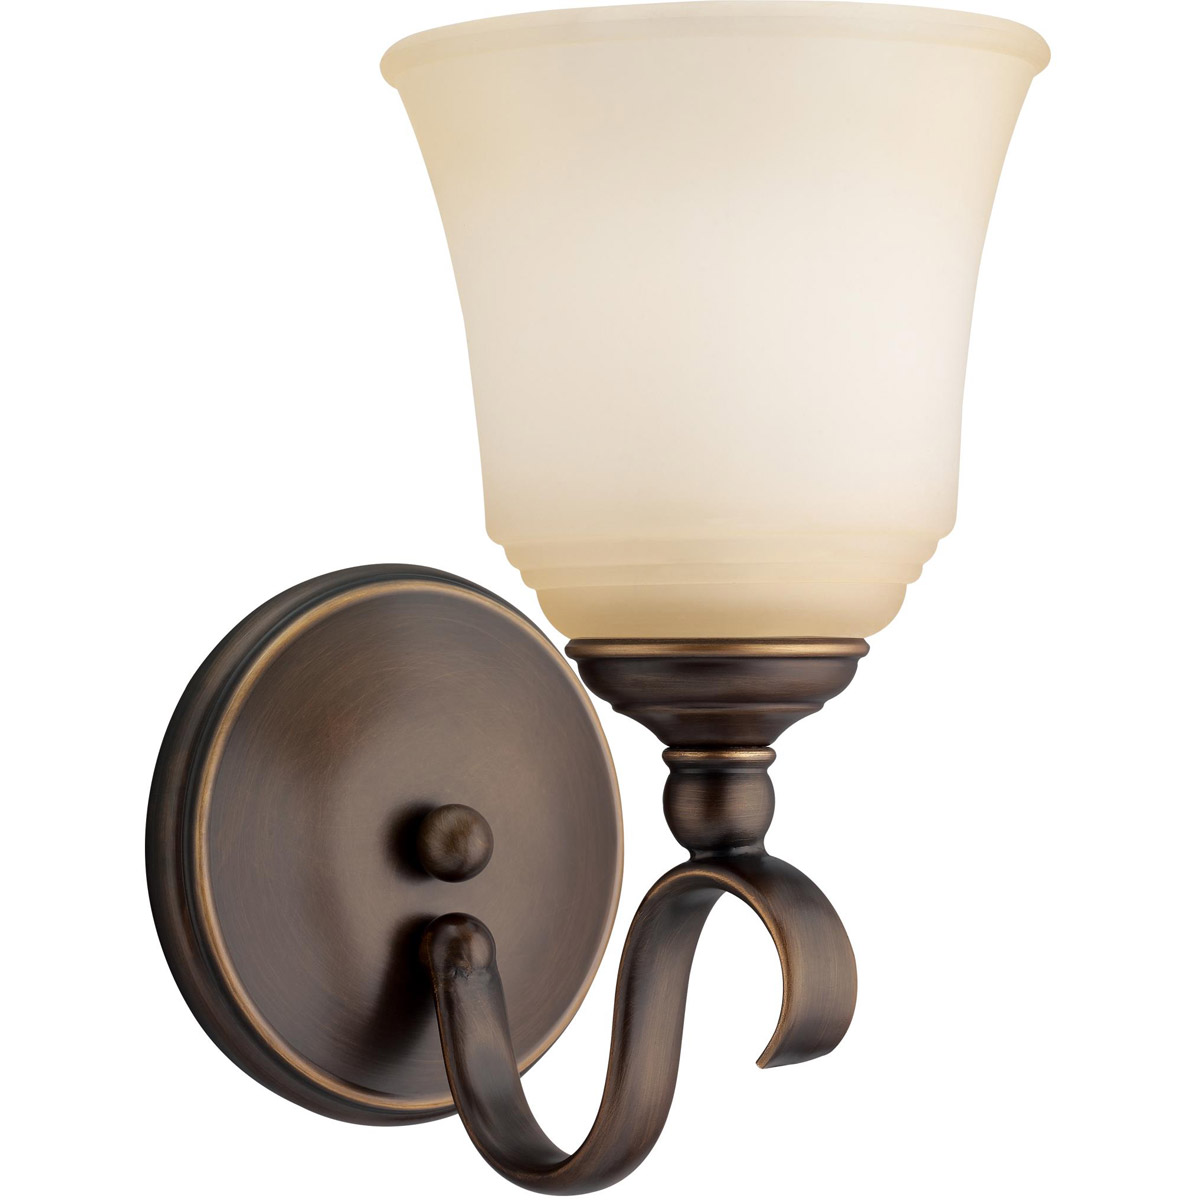 Sea Gull 41380-829 Parkview 1 Light 6 inch Russet Bronze Bath Vanity Wall Light in Ginger Glass photo